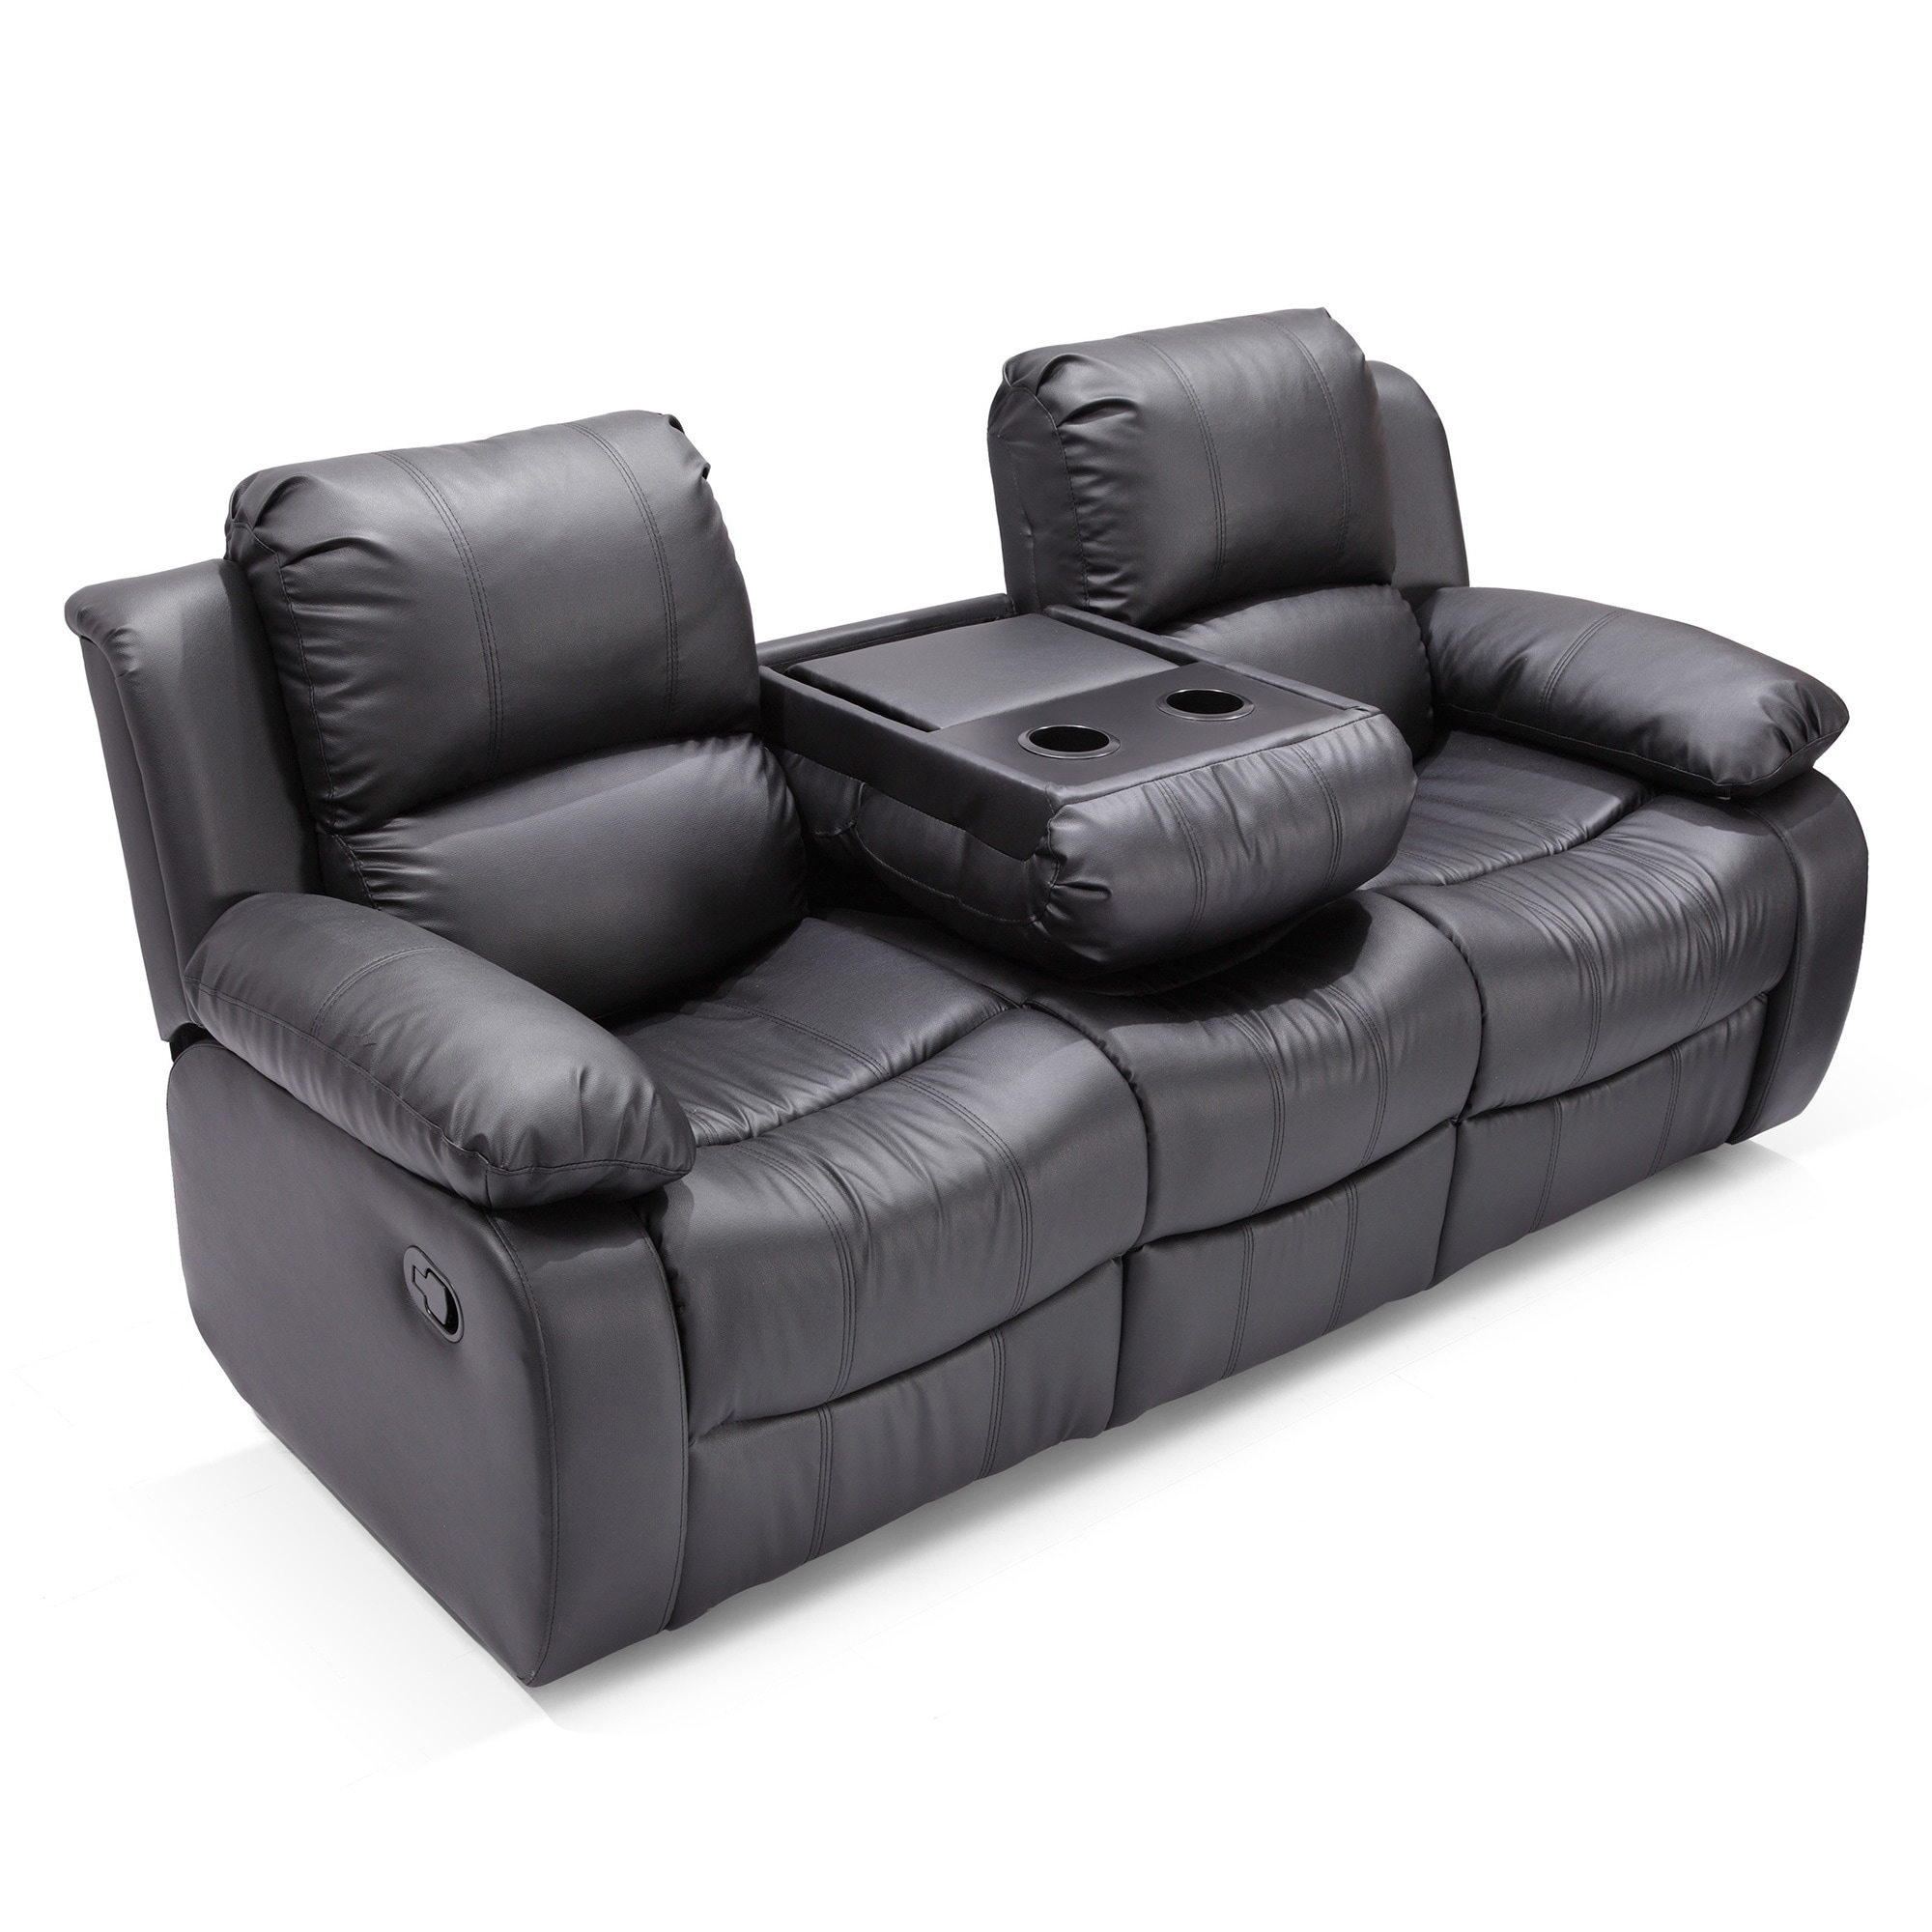 Madison Bonded Leather Modern Reclining Sofa With Drop Down Tea Table Free Shipping Today 11855688